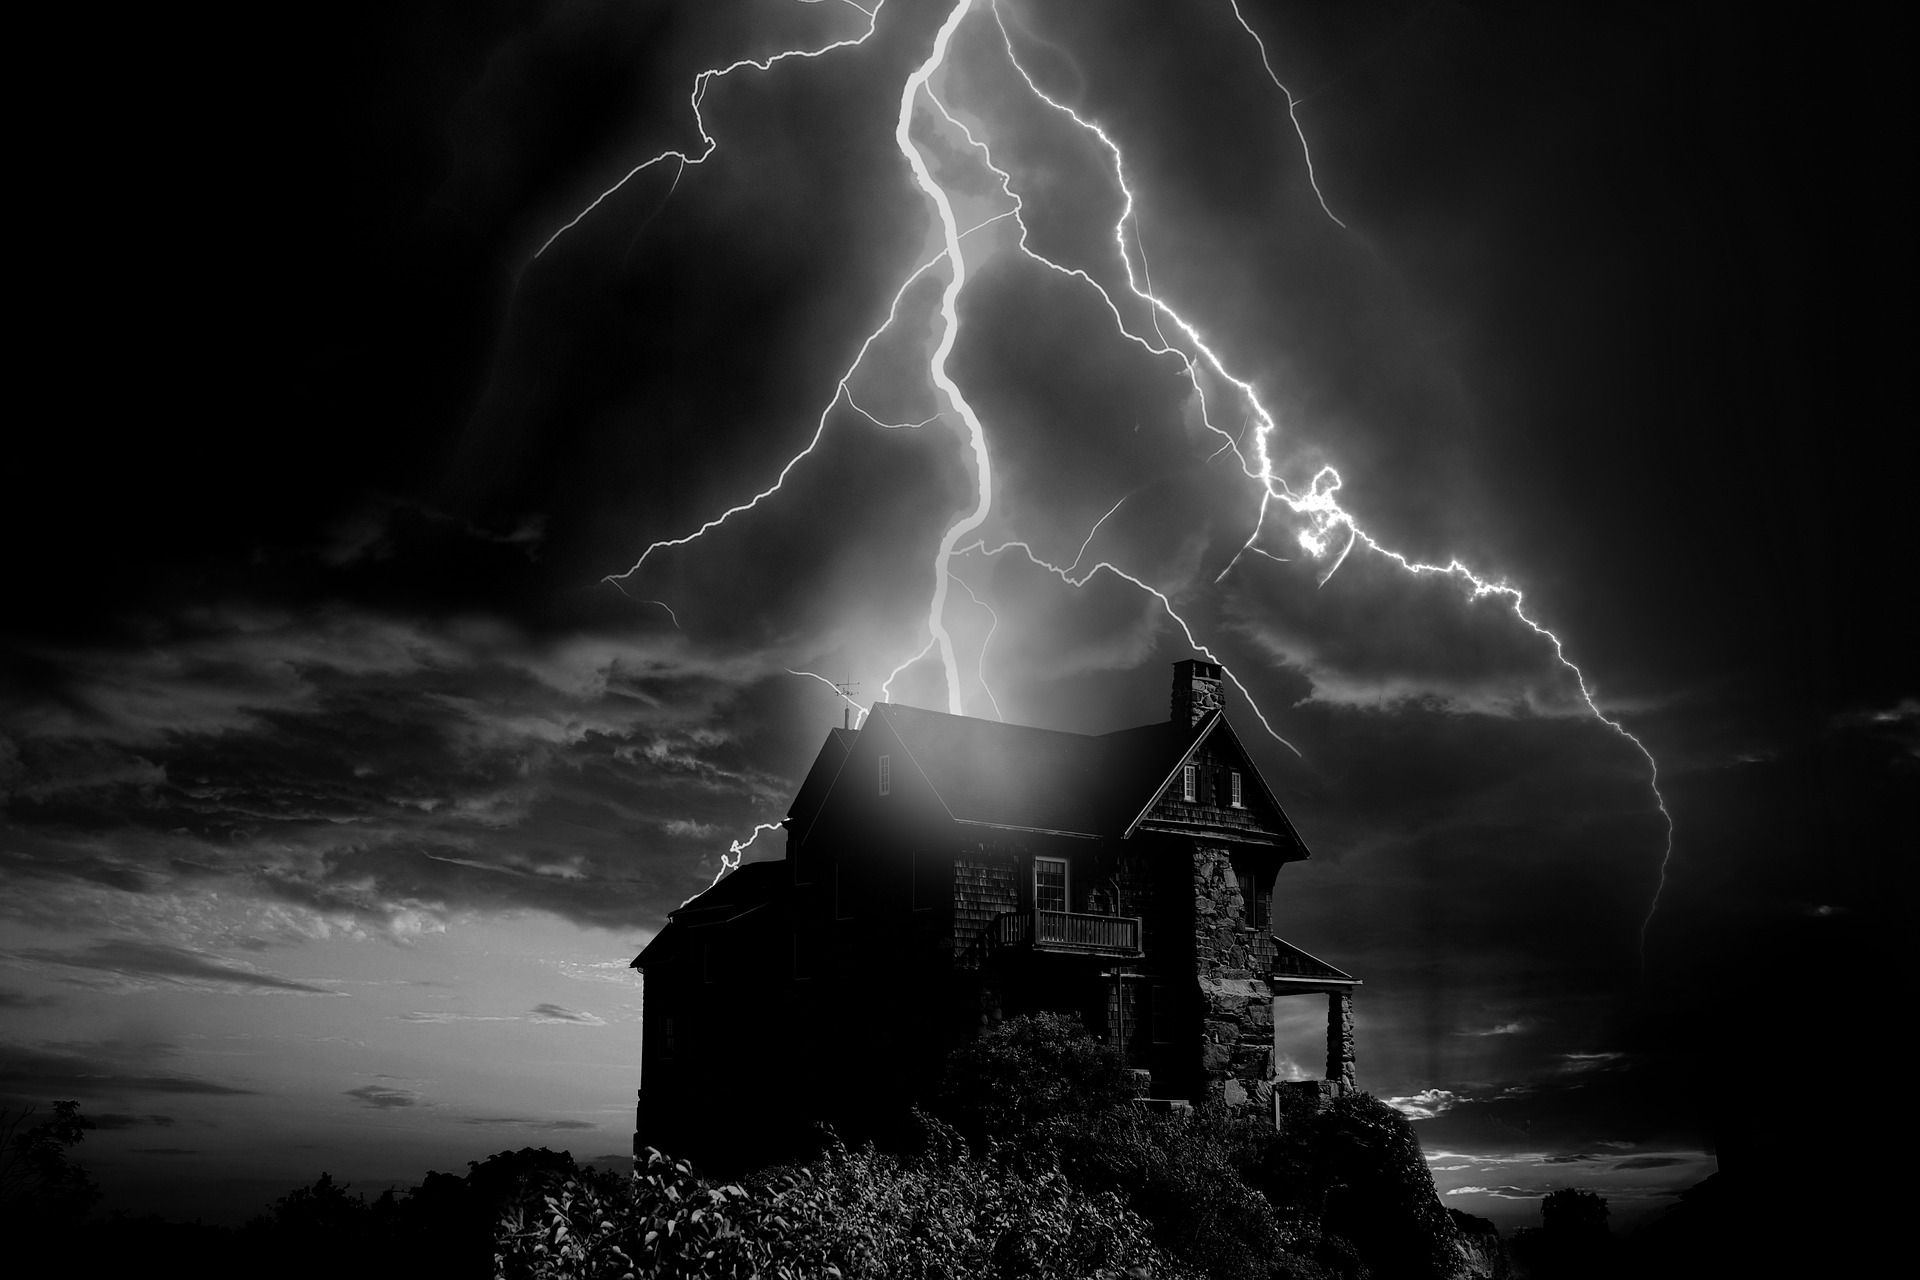 Lightning protection for the house